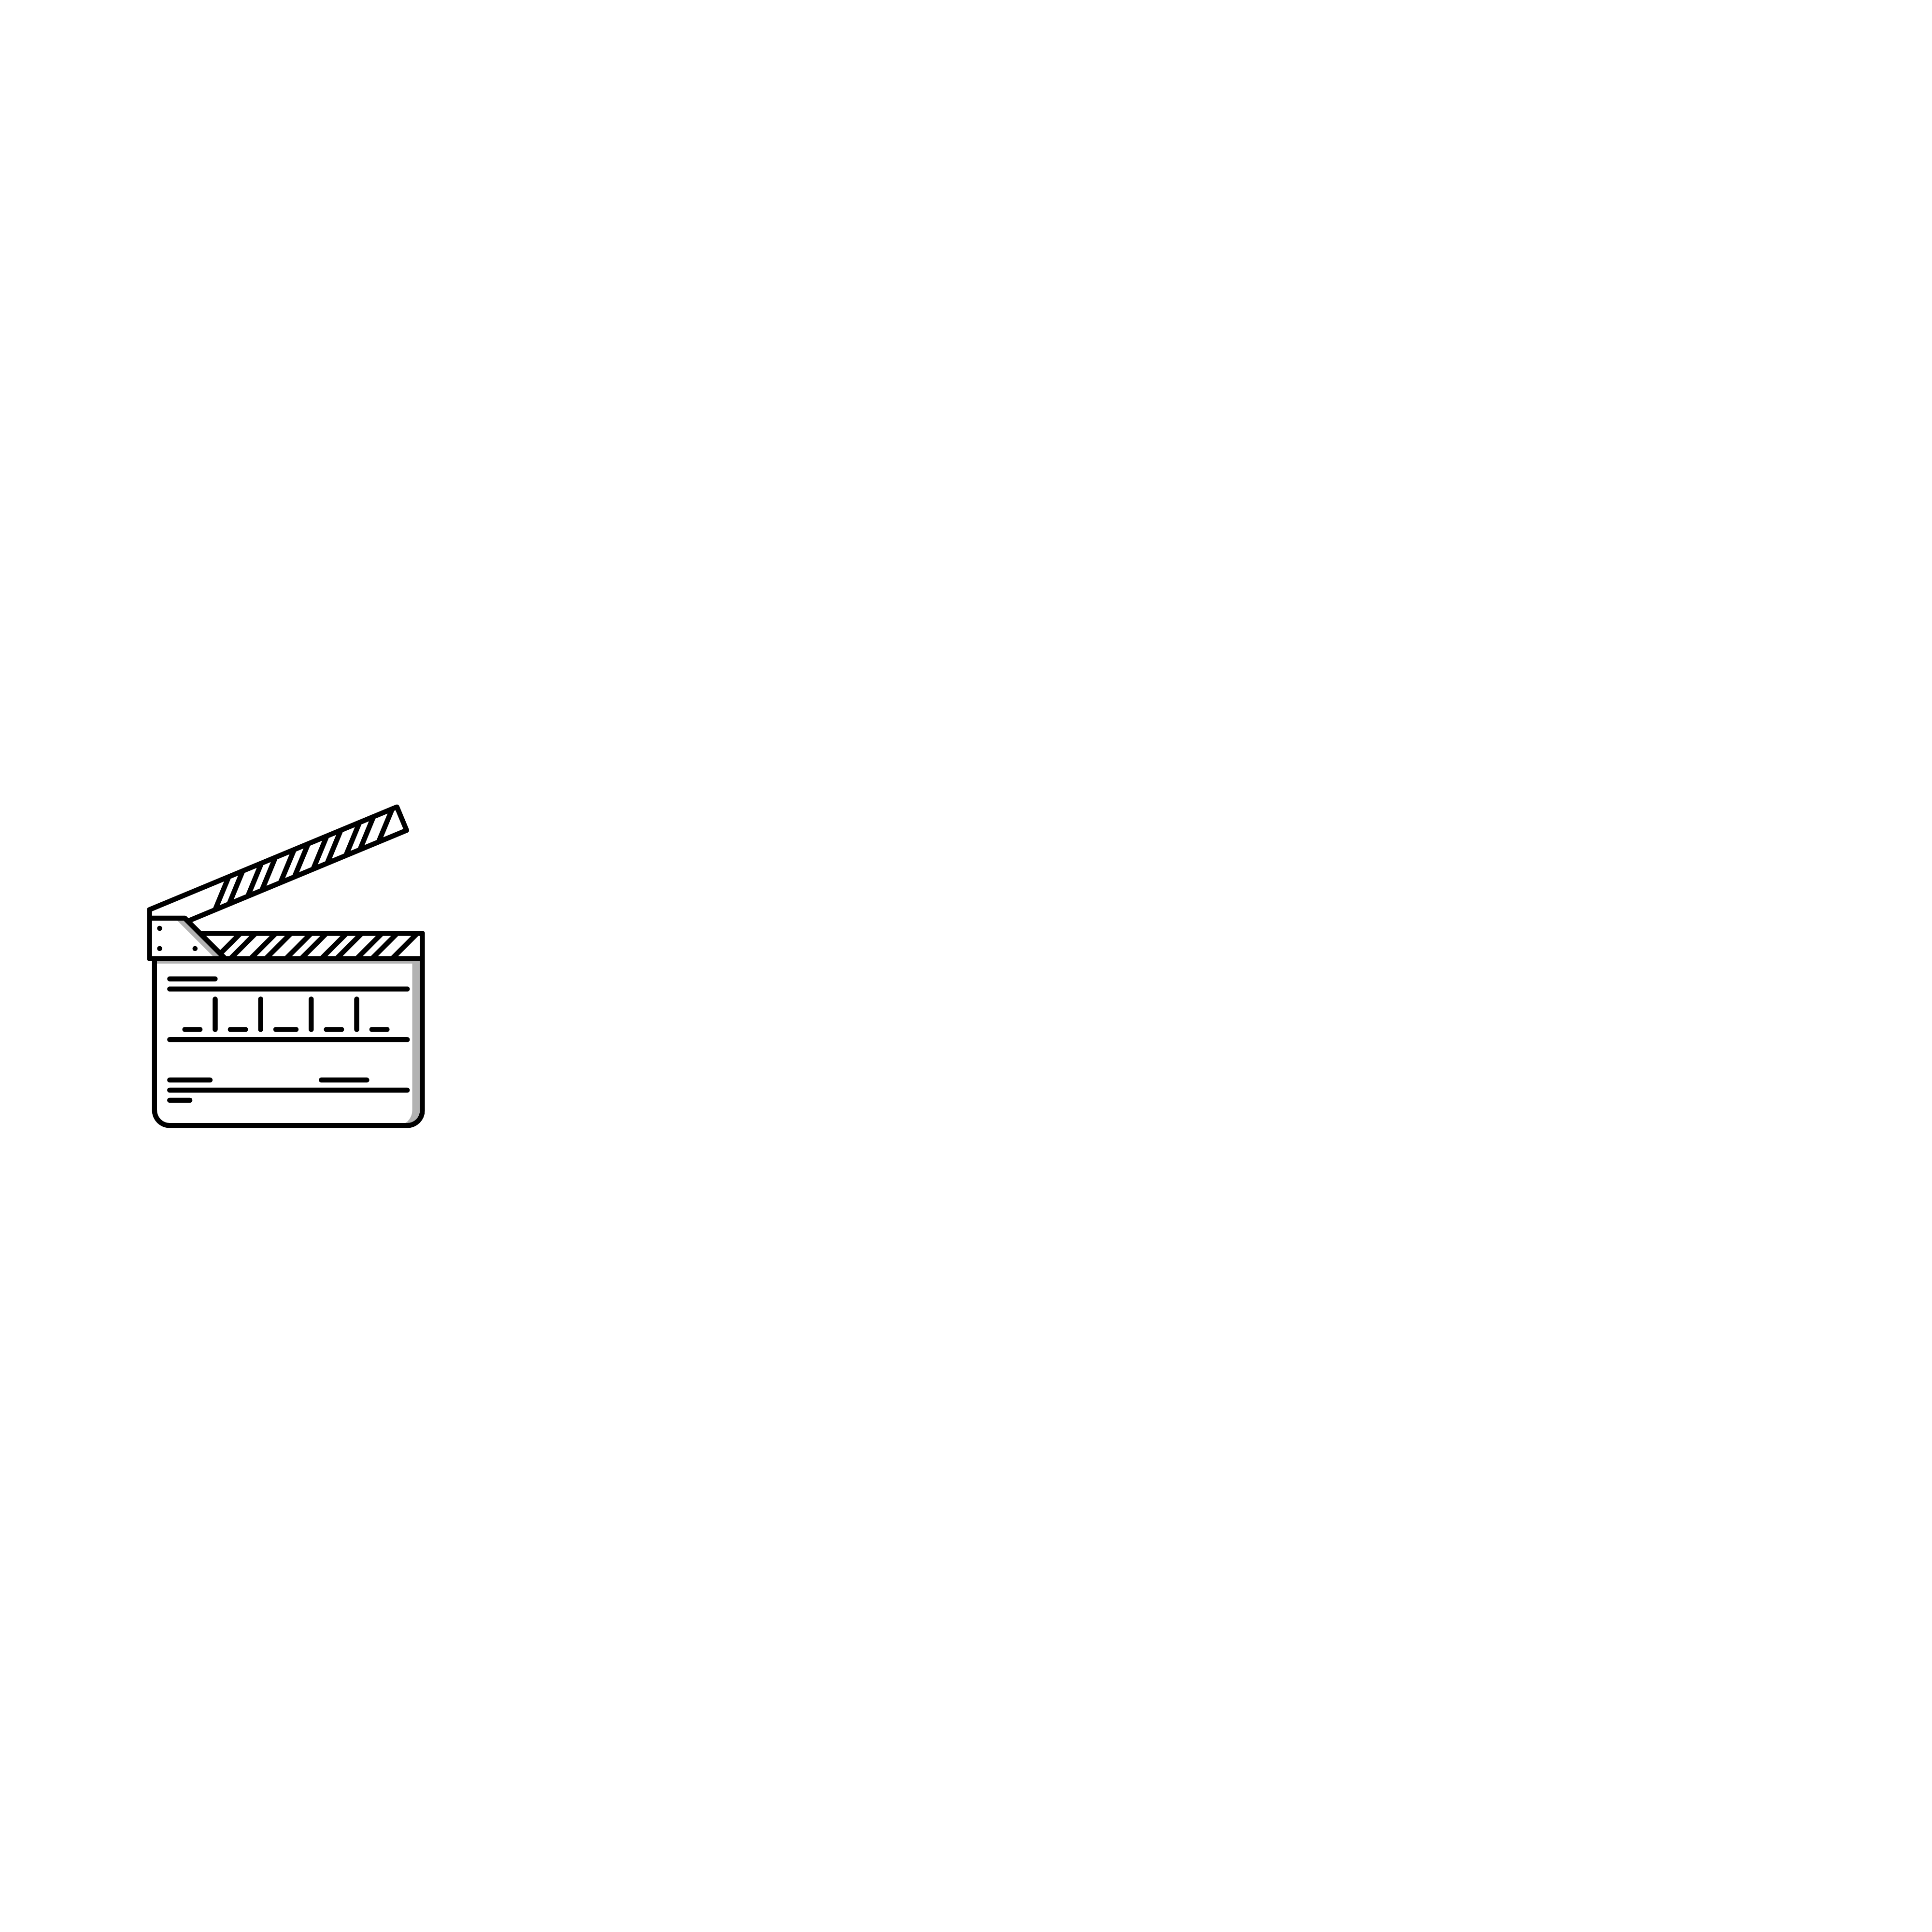 Brand-In Entertainment | Powered by Ninja Toaster Productions